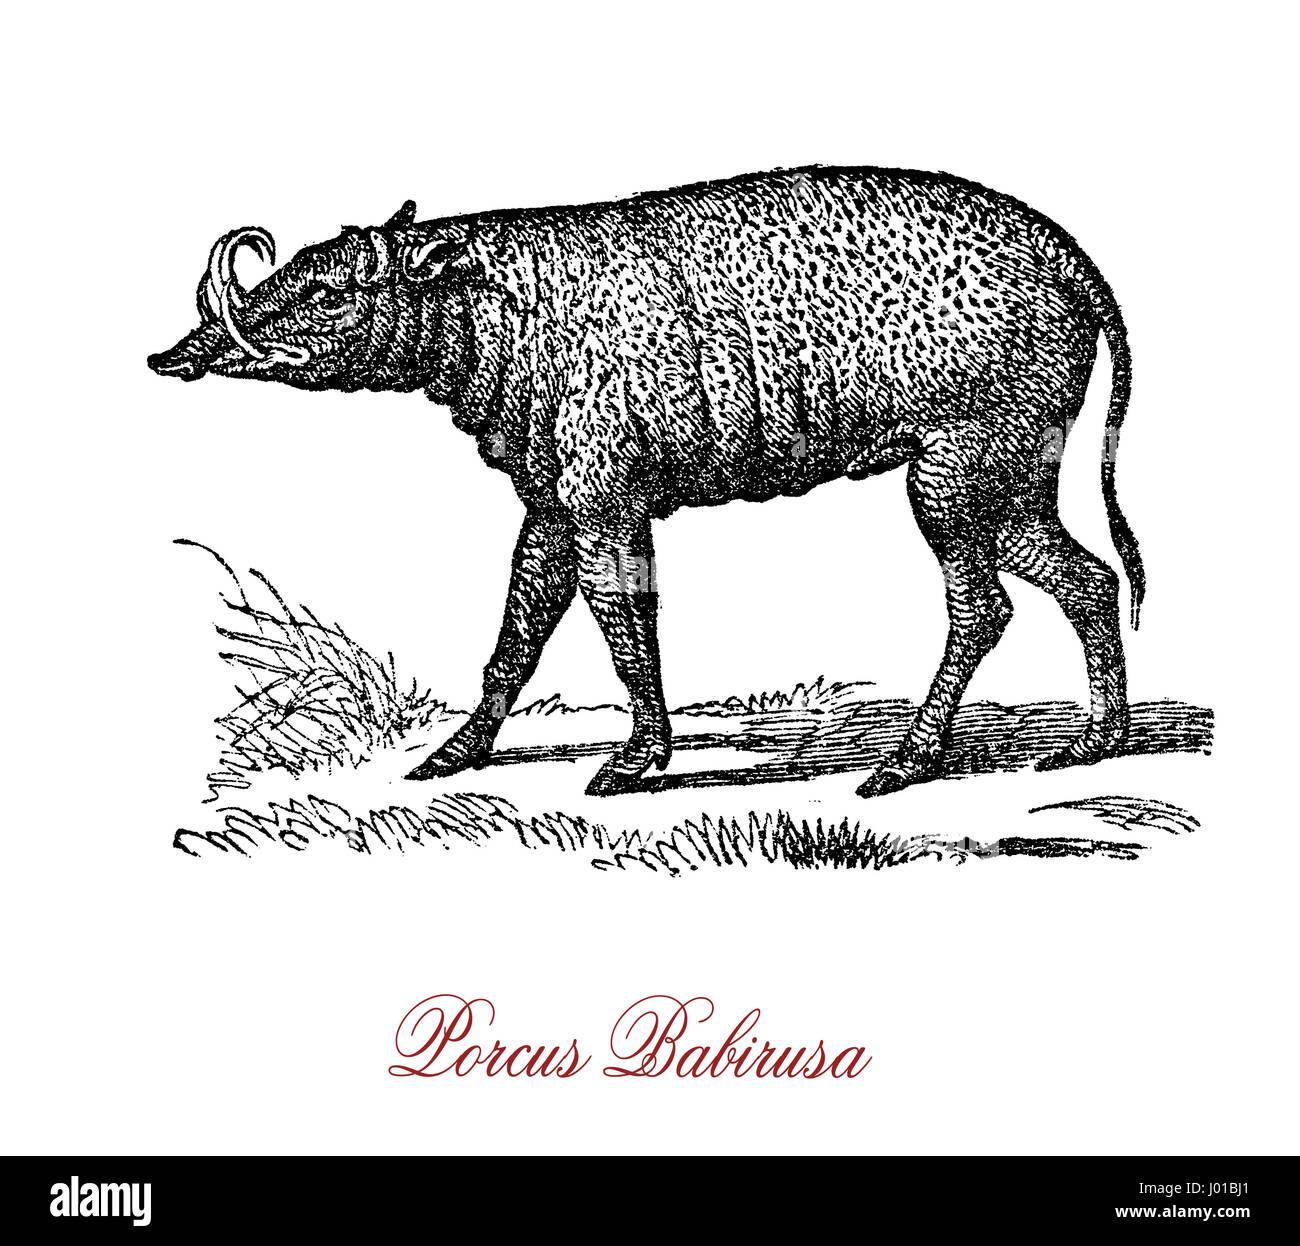 The porcus babirusa (Babyrousa babyrussa) is a wild pig-like animal native to the island of Buru and the two Sula - Stock Image